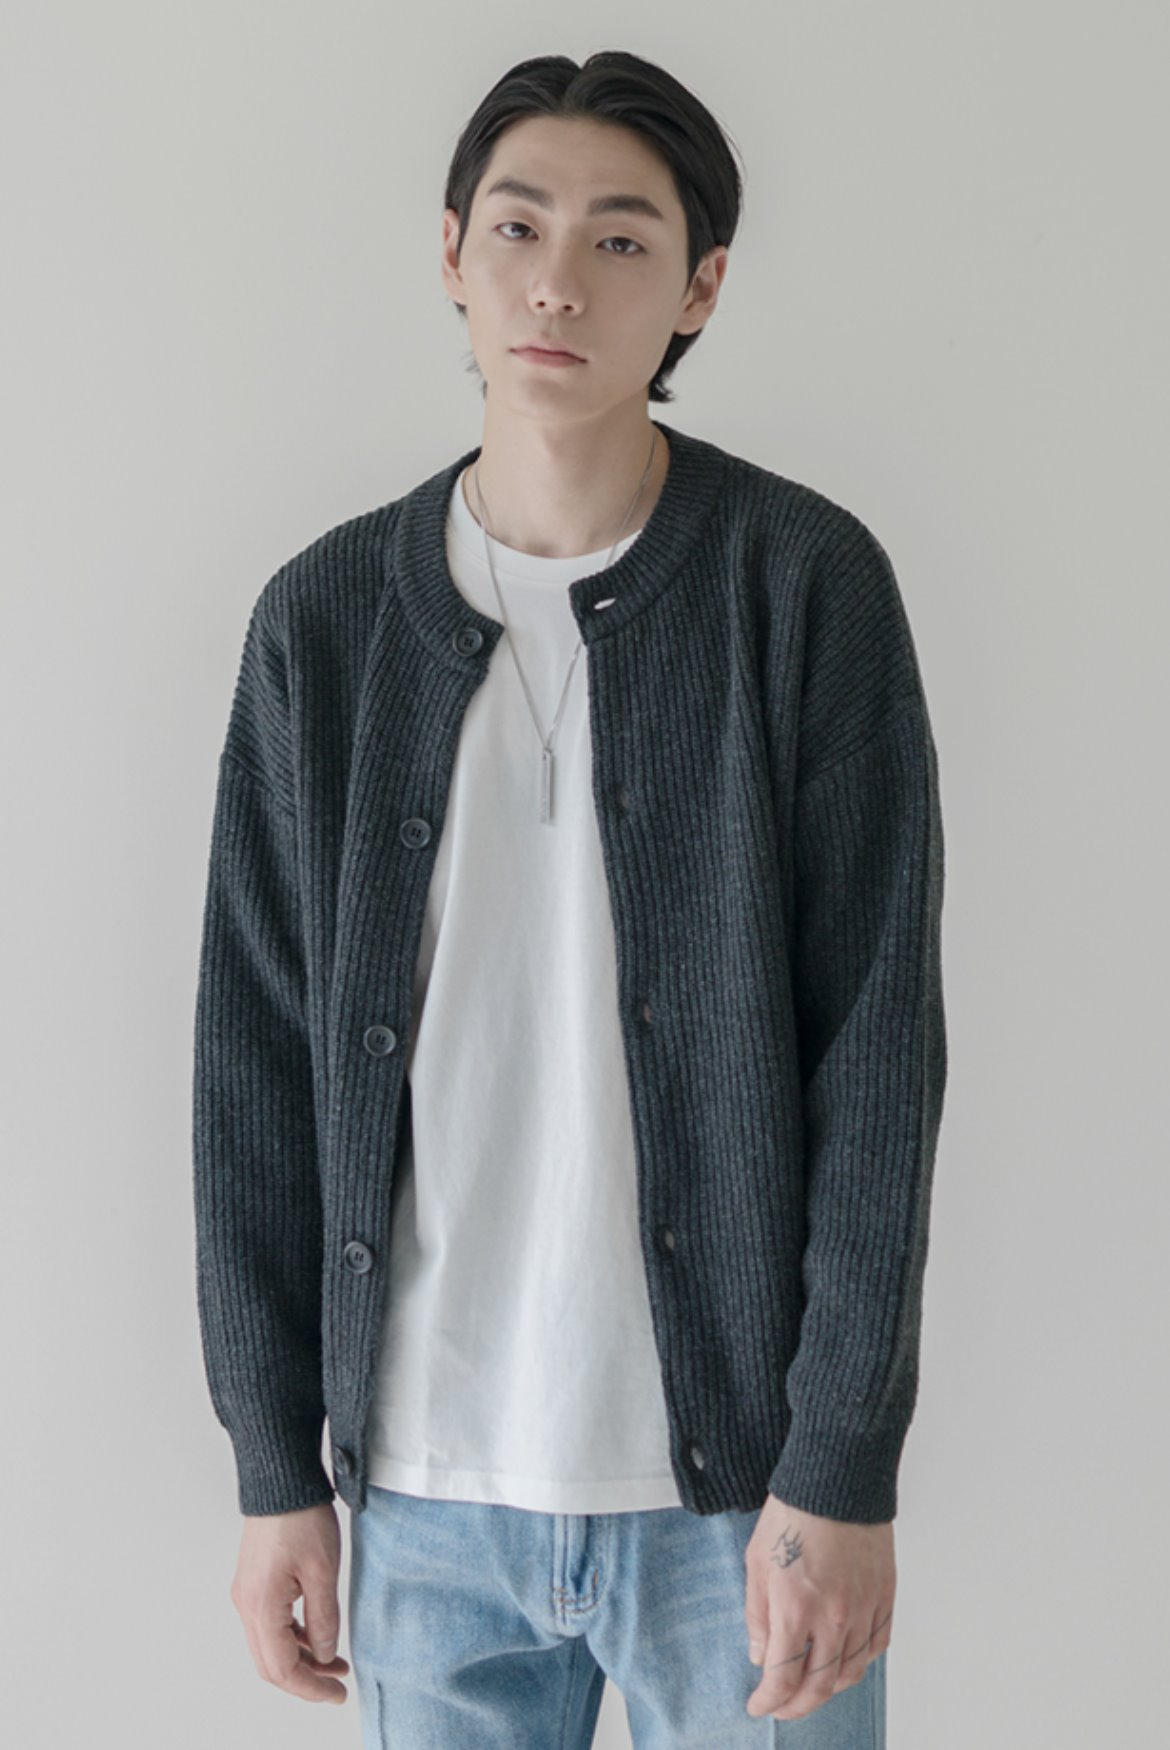 Concise Round Neck Cardigan [Charcoal]